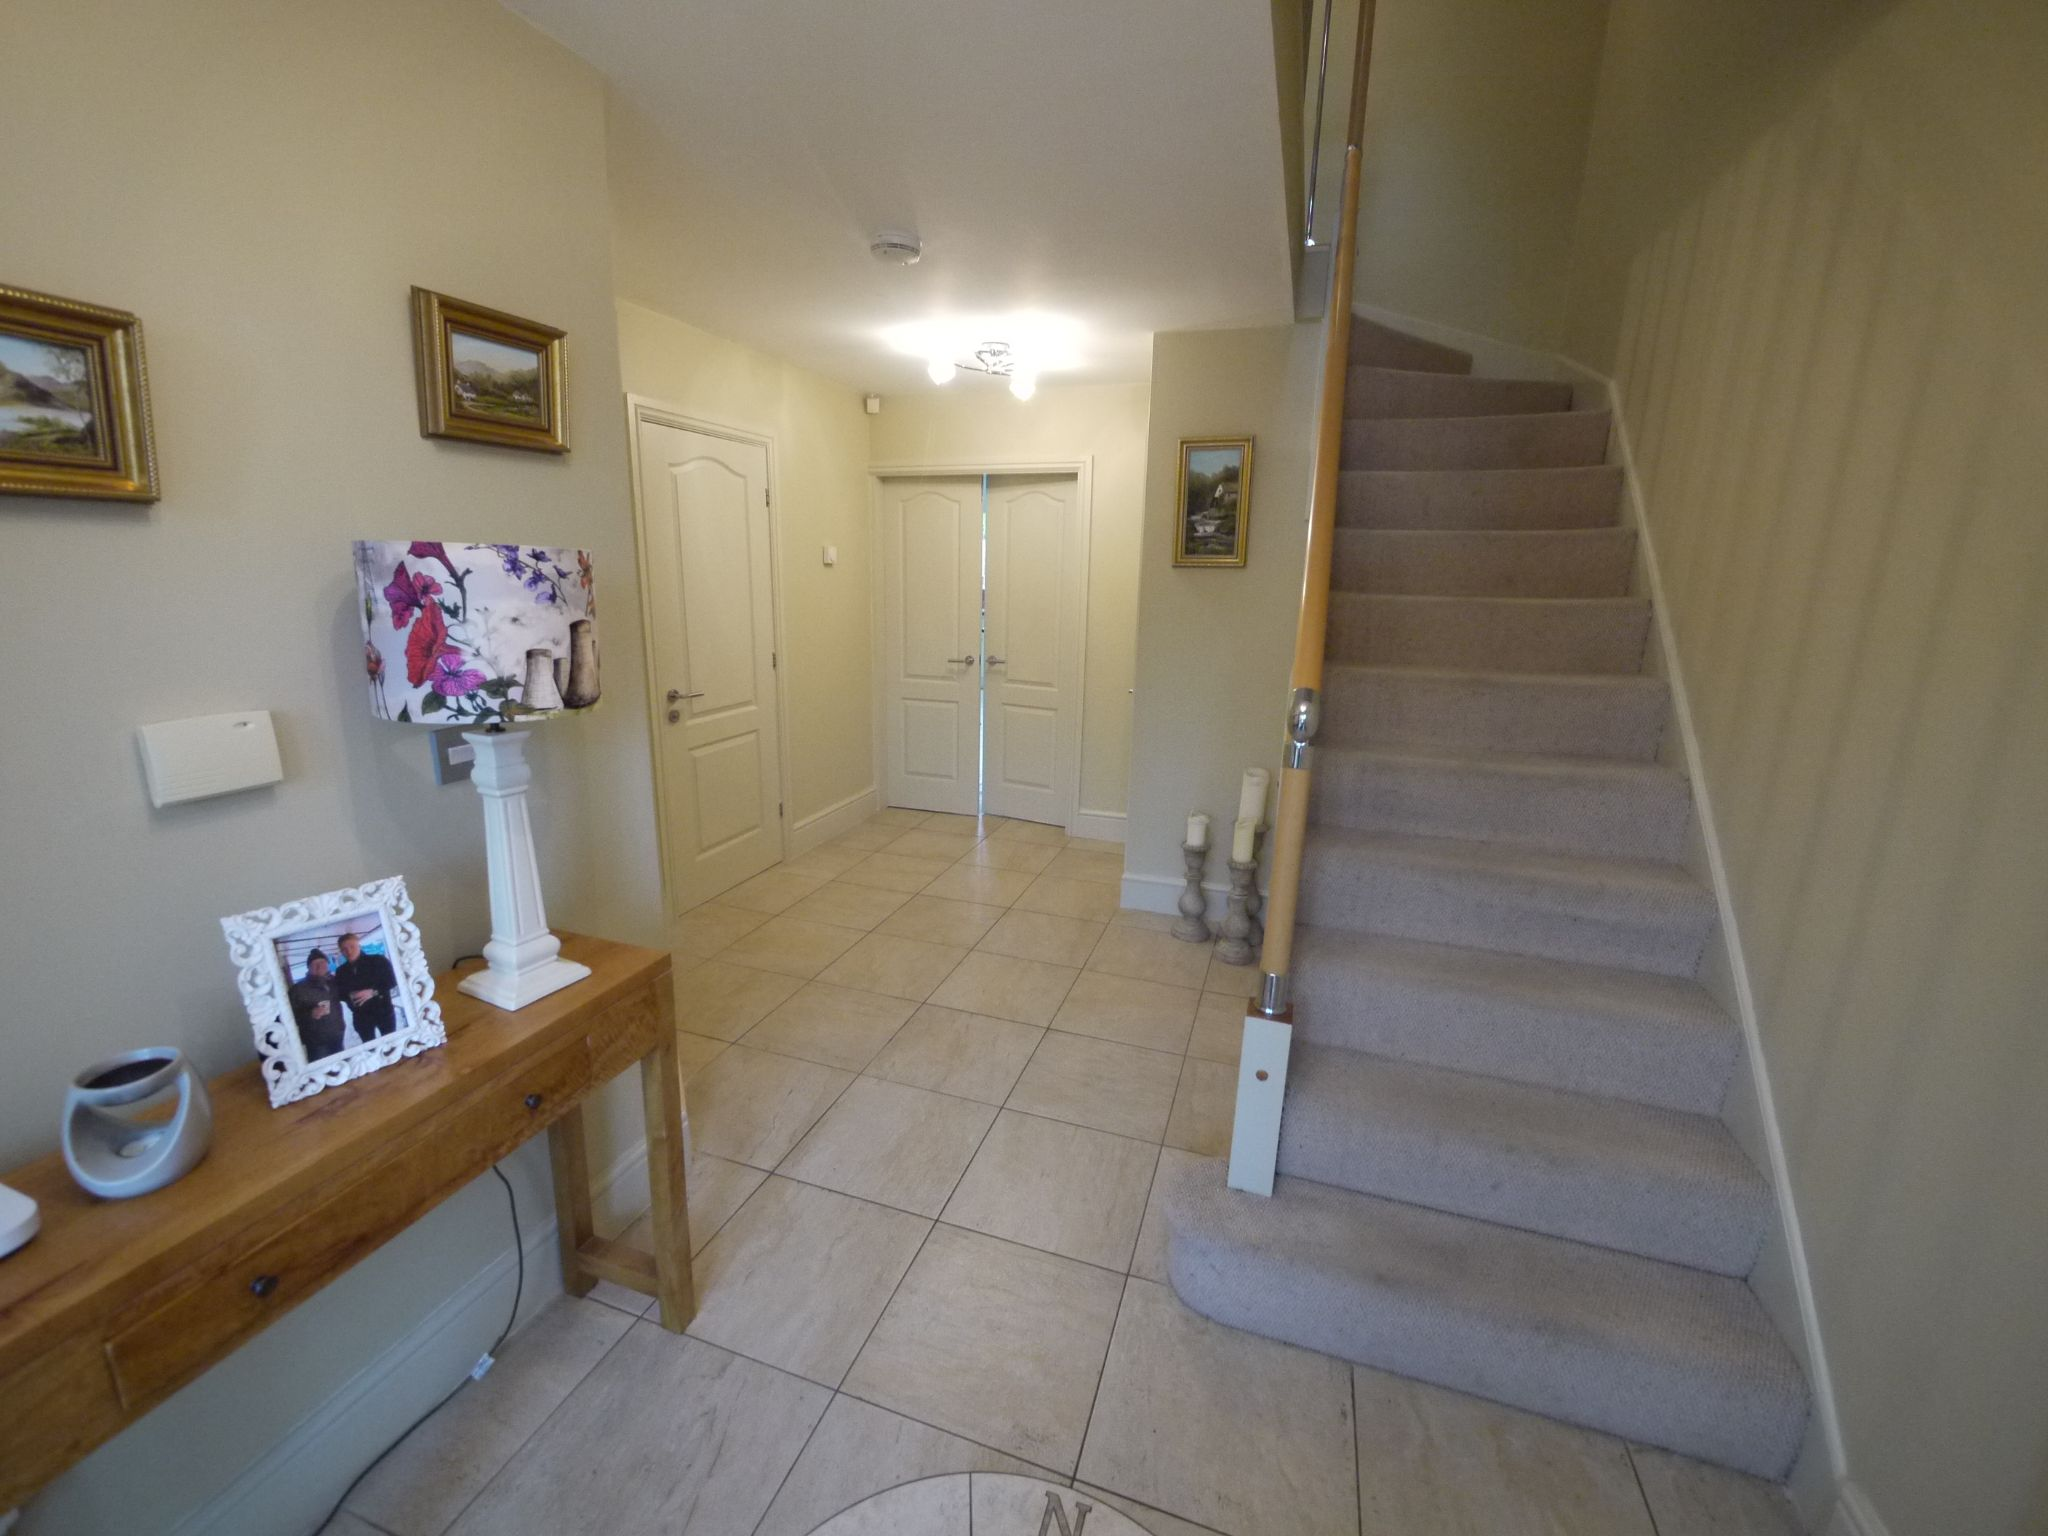 6 bedroom detached house SSTC in Halifax - Hall 3.